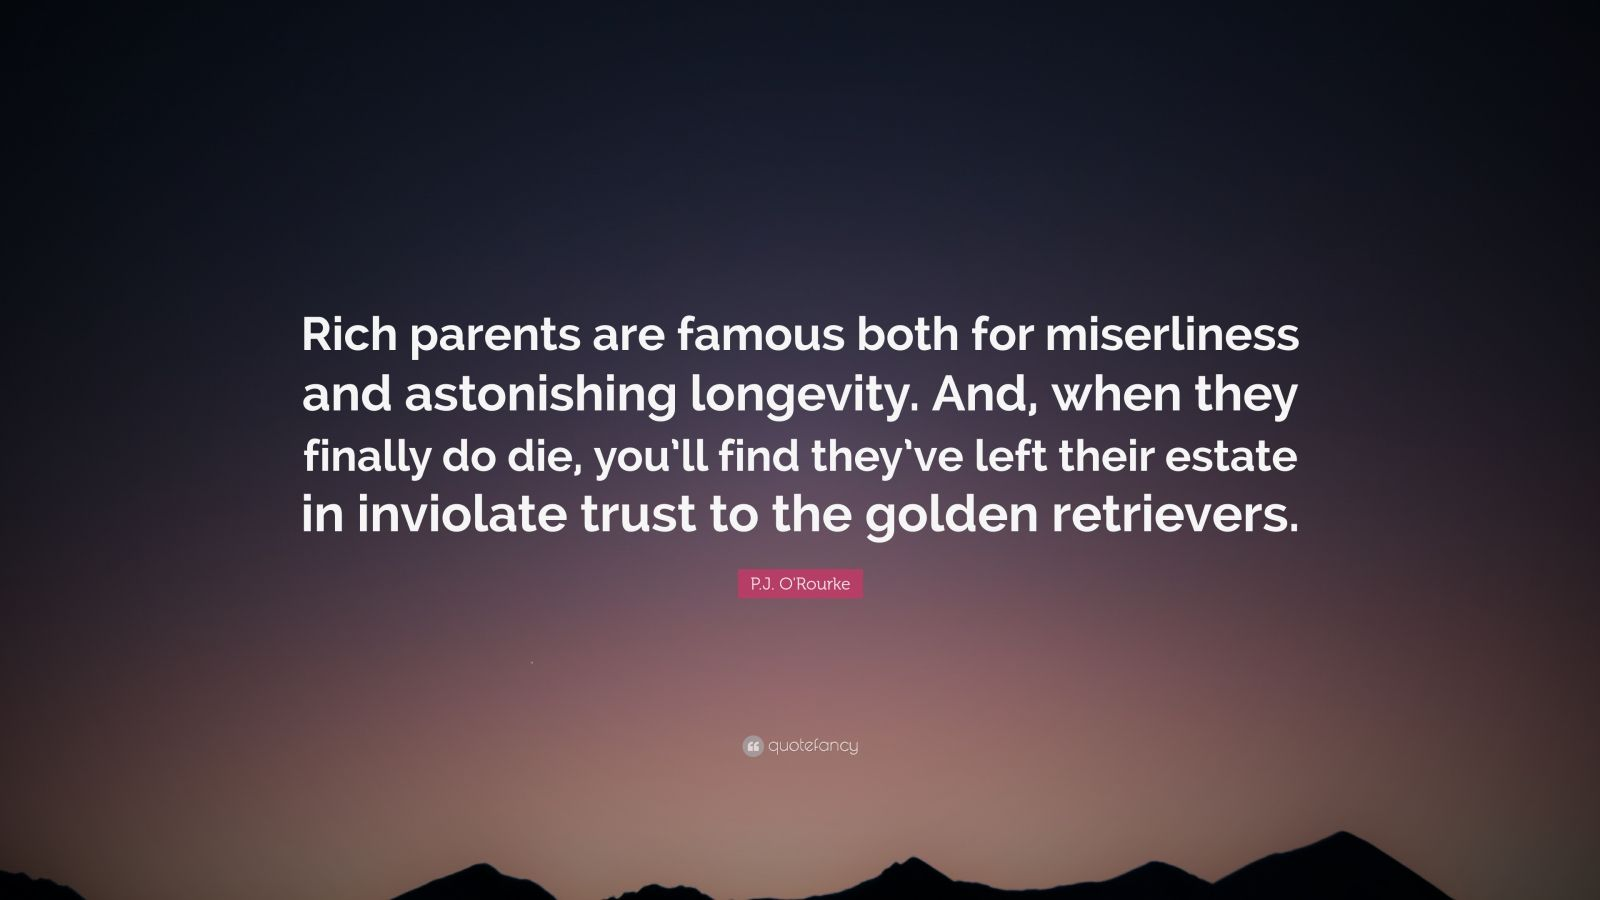 "P.J. O'Rourke Quote: ""Rich parents are famous both for miserliness and astonishing longevity. And, when they finally do die, you'll find they've left their estate in inviolate trust to the golden retrievers."""